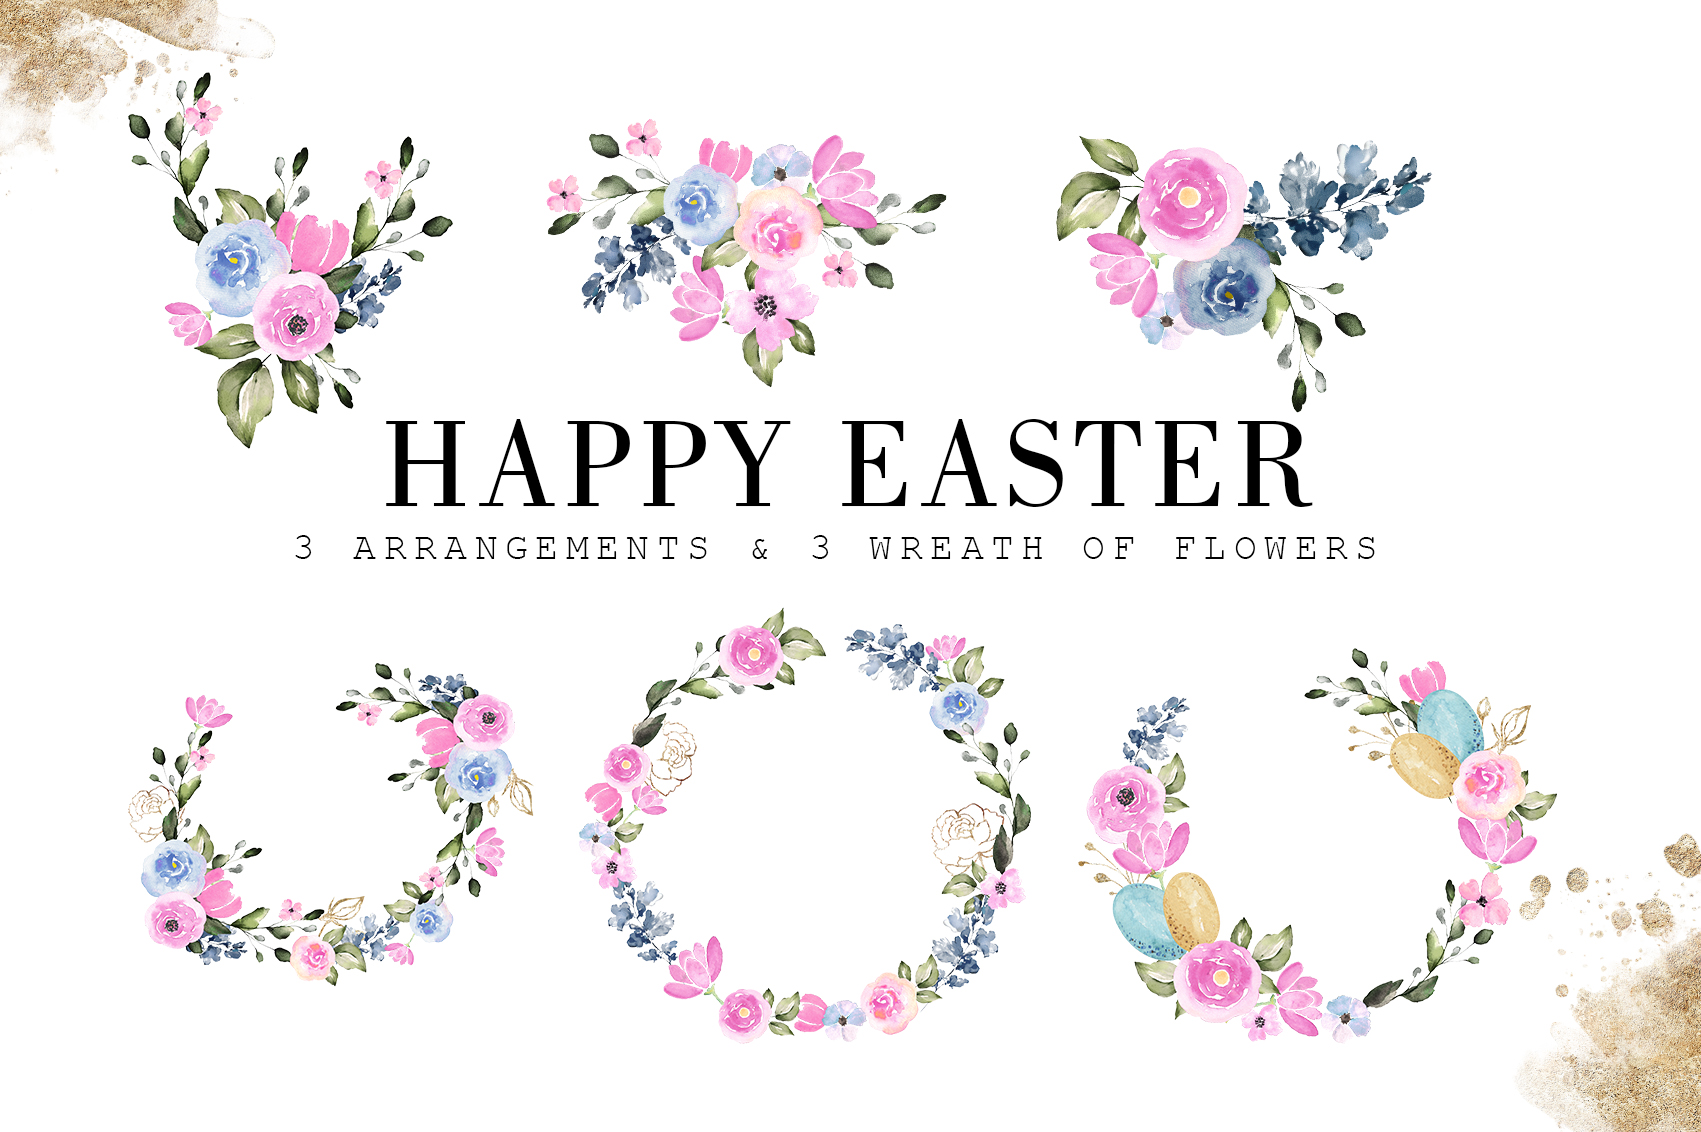 Happy Easter|Watercolor Elements clipArt example image 4